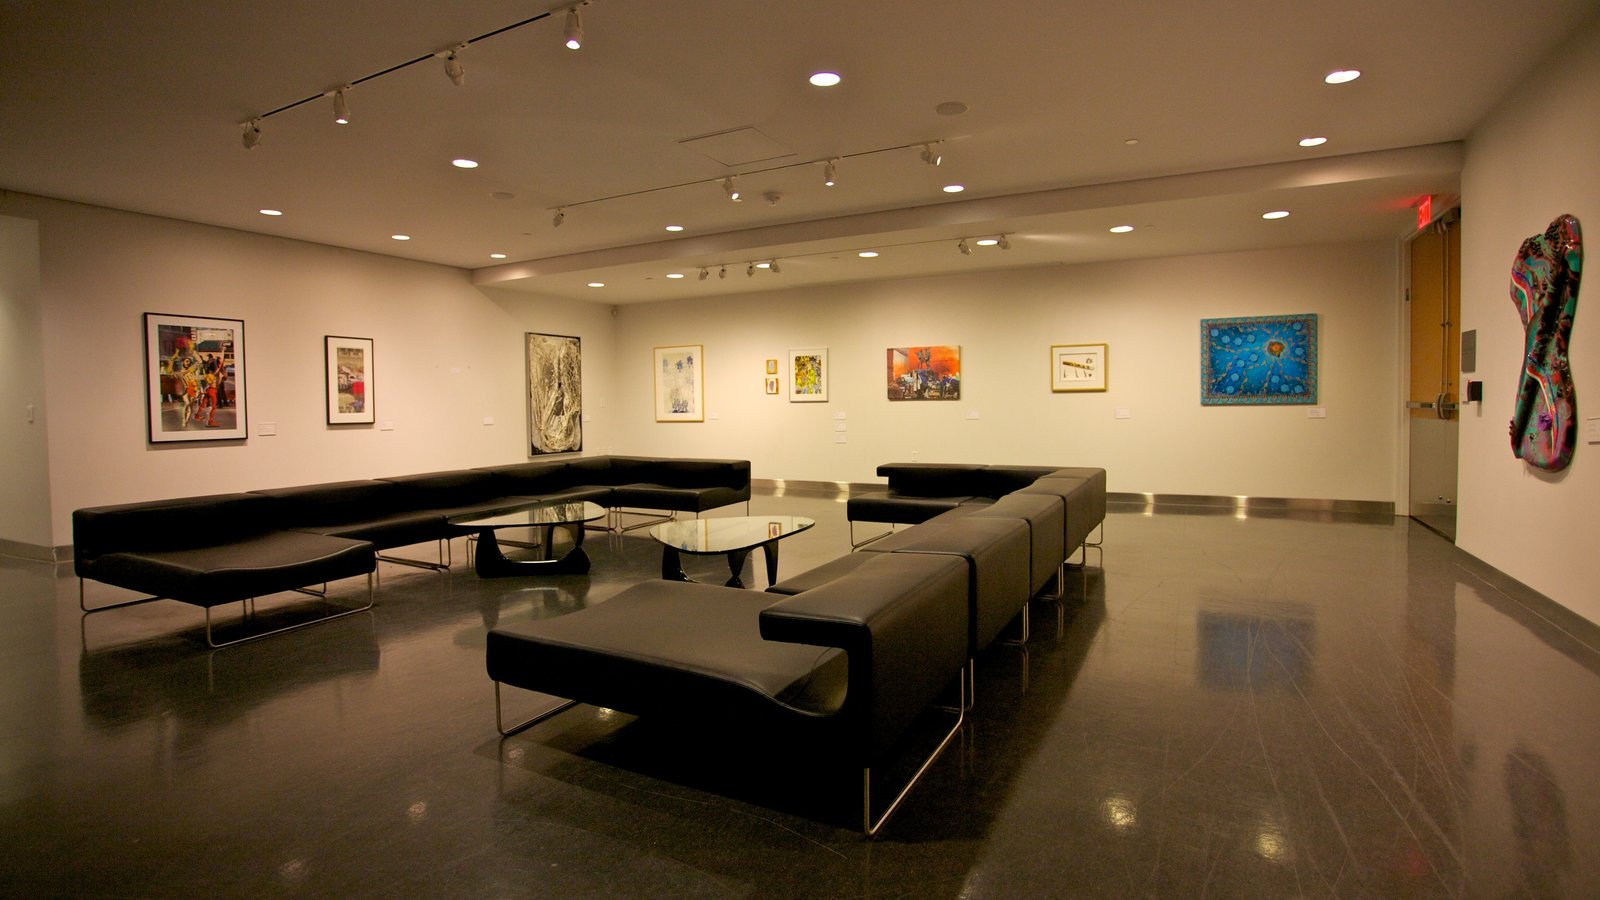 Art Gallery of Alberta featuring interior views and art